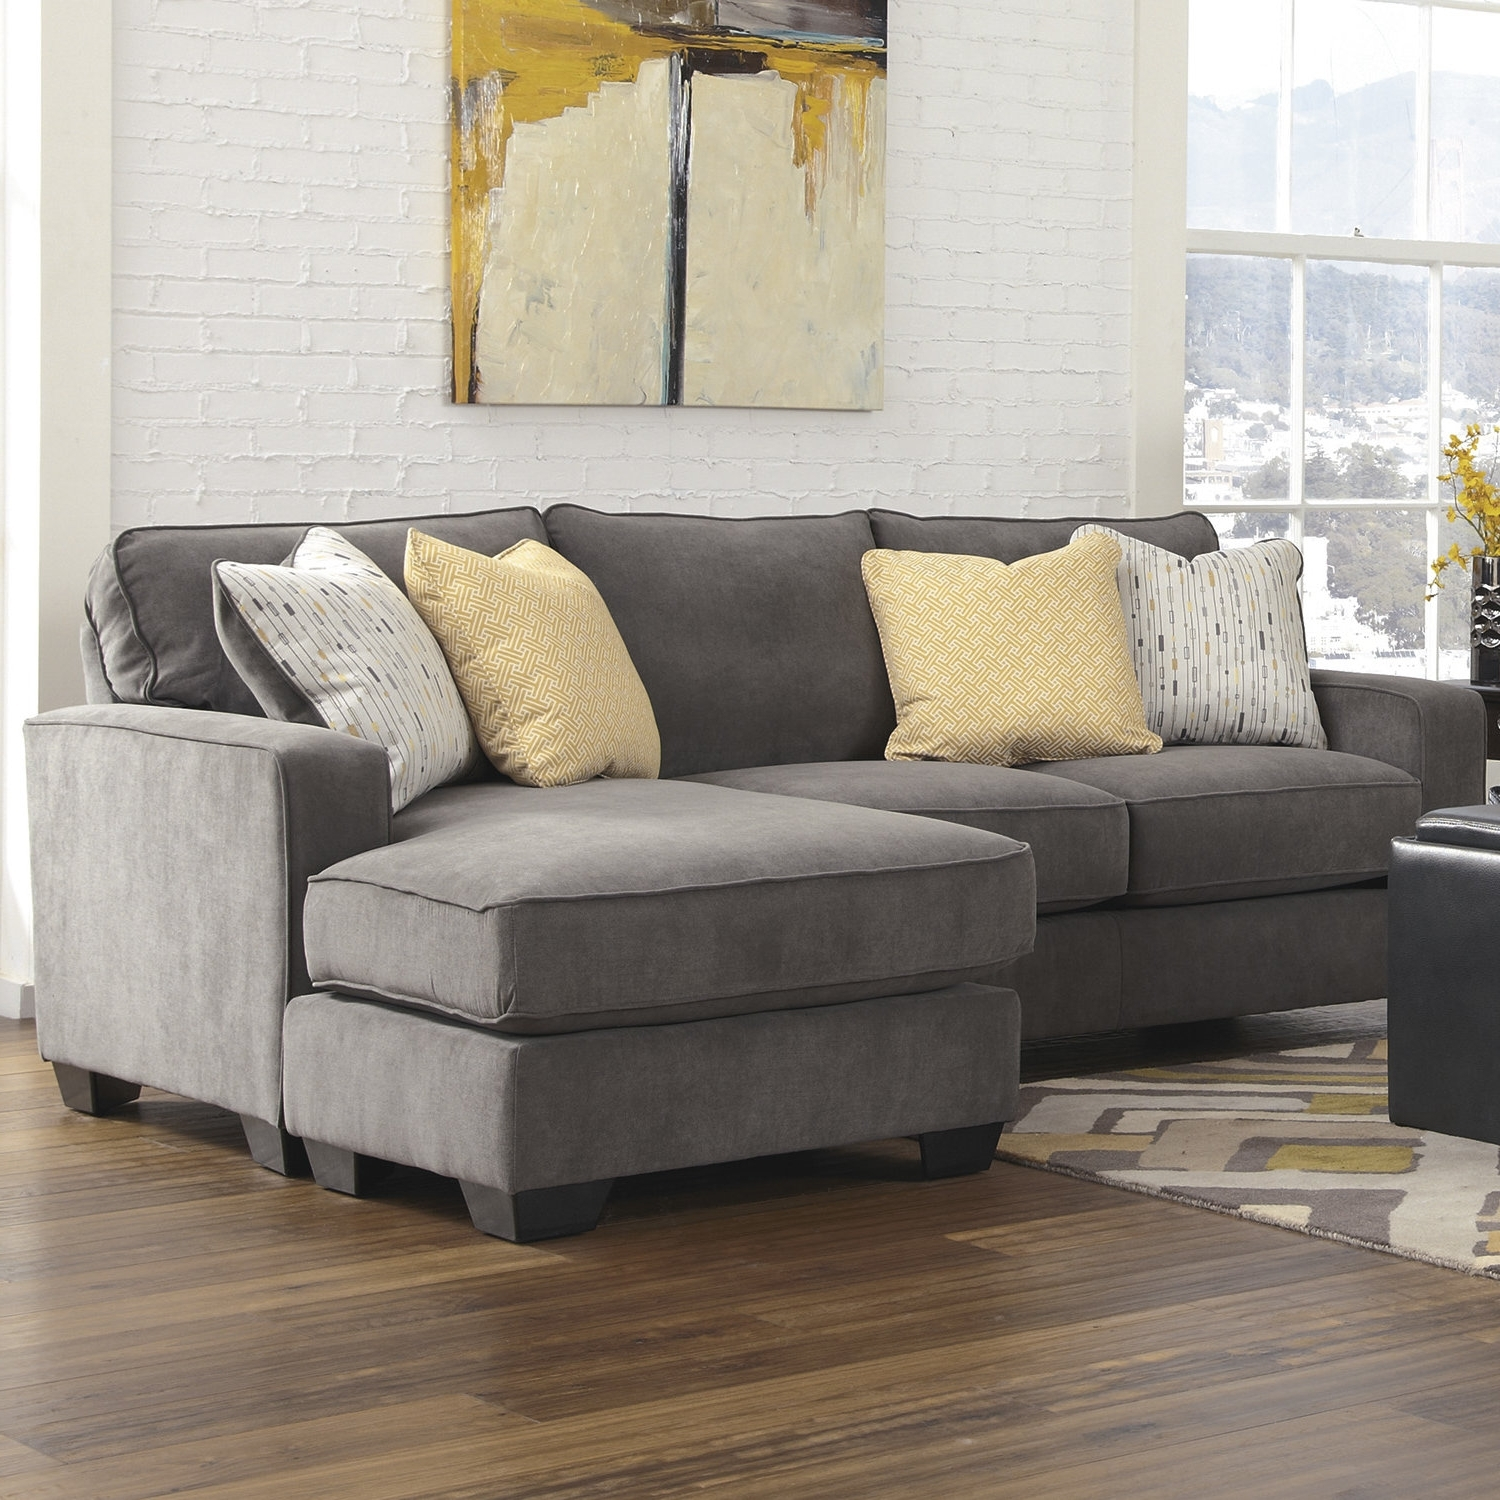 2017 Unique Sectional Sofas Inside Sectional Sofas (View 12 of 15)